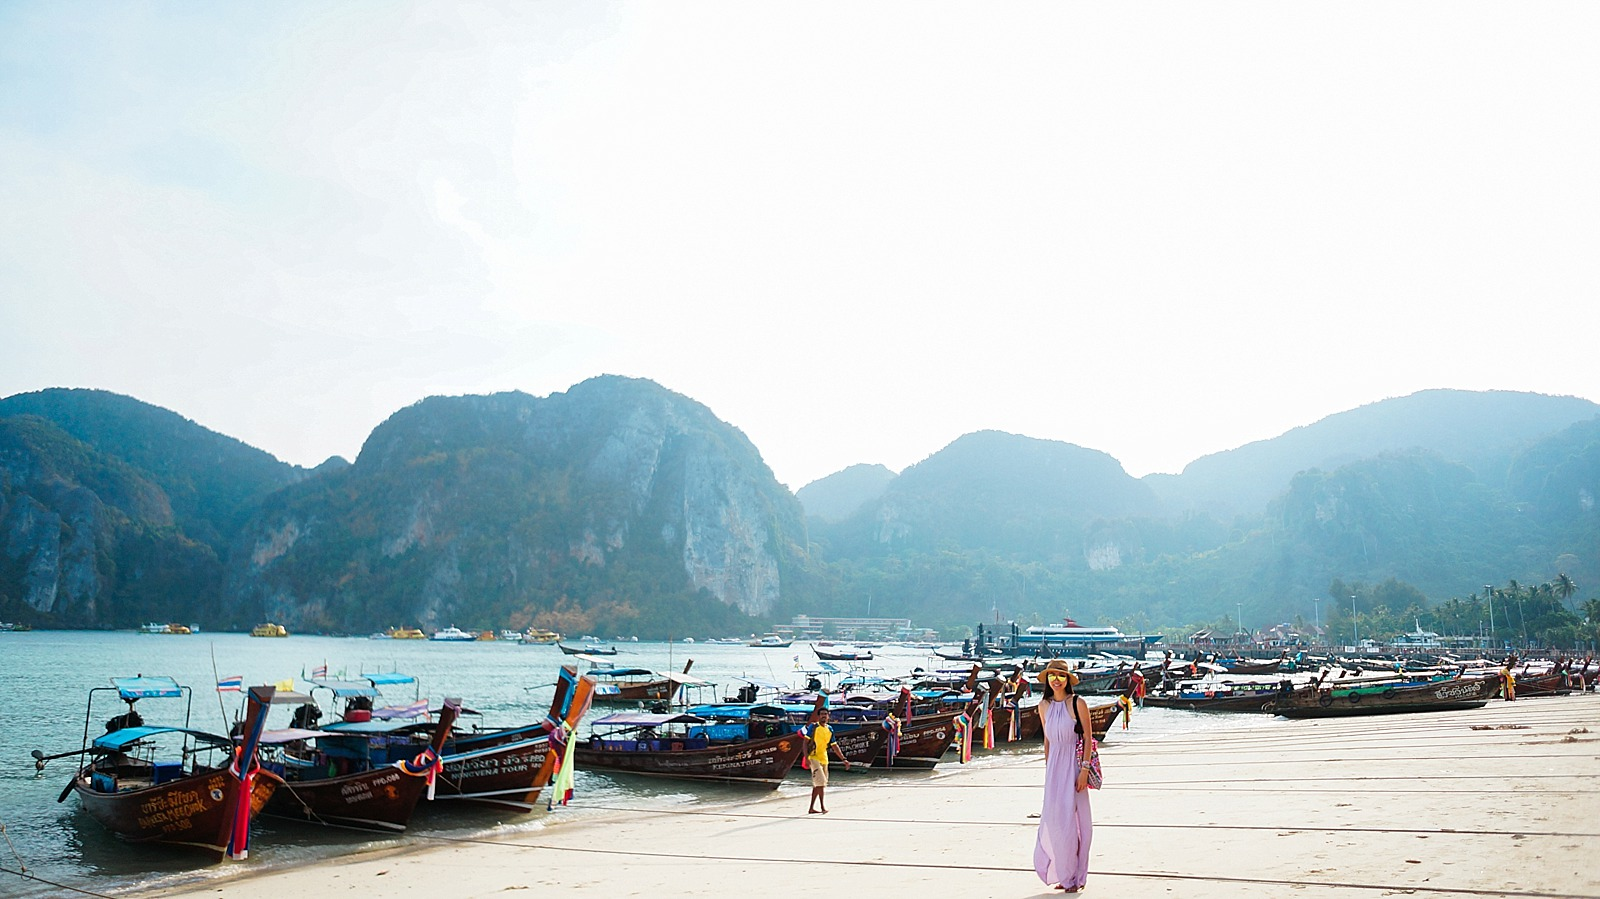 thailand diana elizabeth travel blogger in purple dress by the private long tails on Thailand phi phi islands